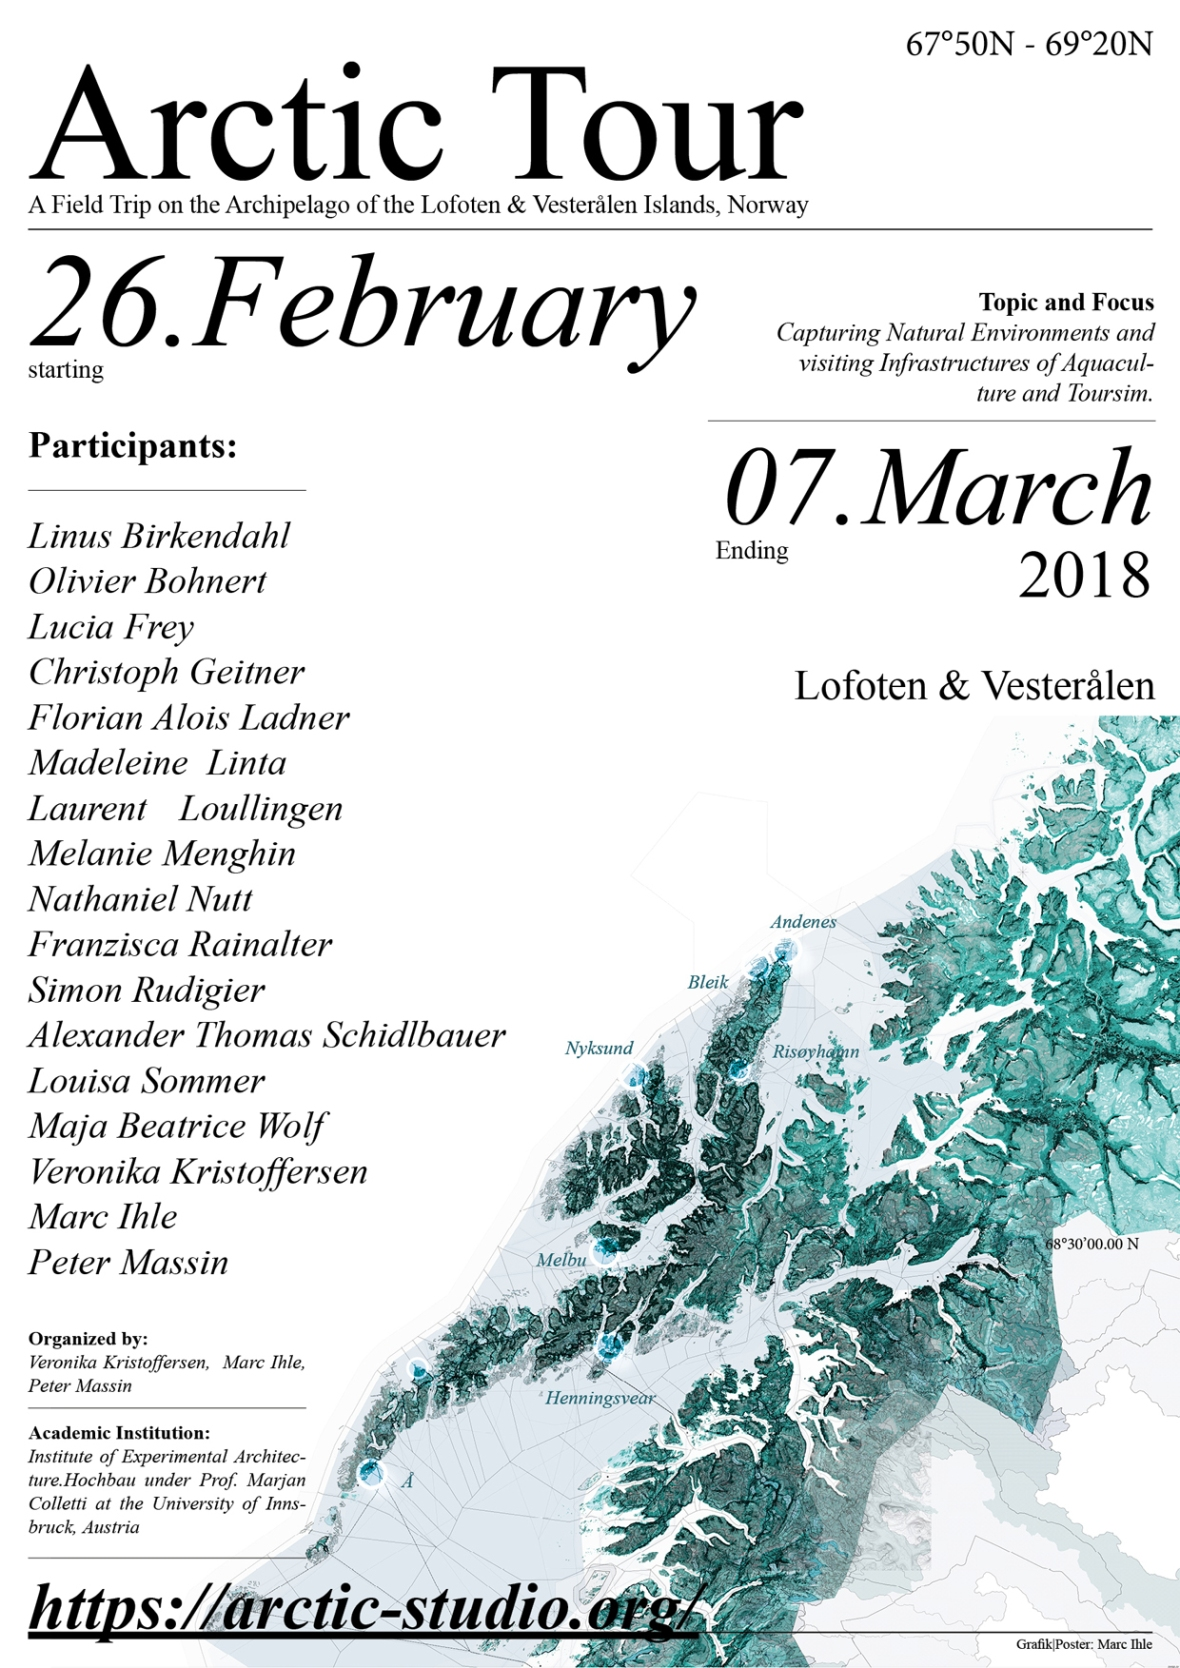 Announcement of the Arctic Tour - Fieldtrip to Lofoten and Vesteralen Islands, Norway | organized by Veronika Kristoffersen, Marc Ihle and Peter Massin | Institute of Experimental Architecture.Hochbau at the University of Innsbruck